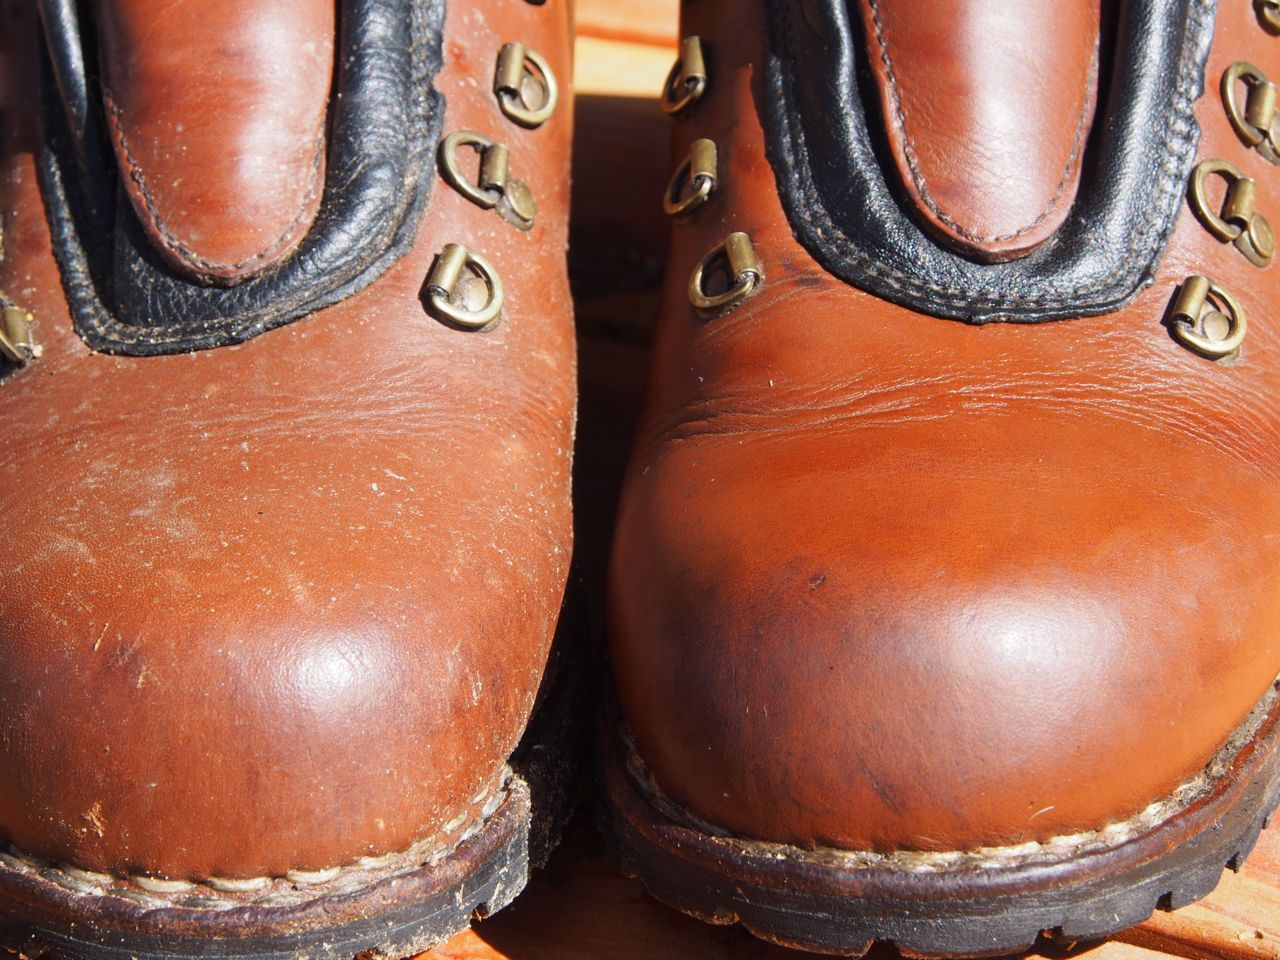 review huberd s boot saddle soap robonza